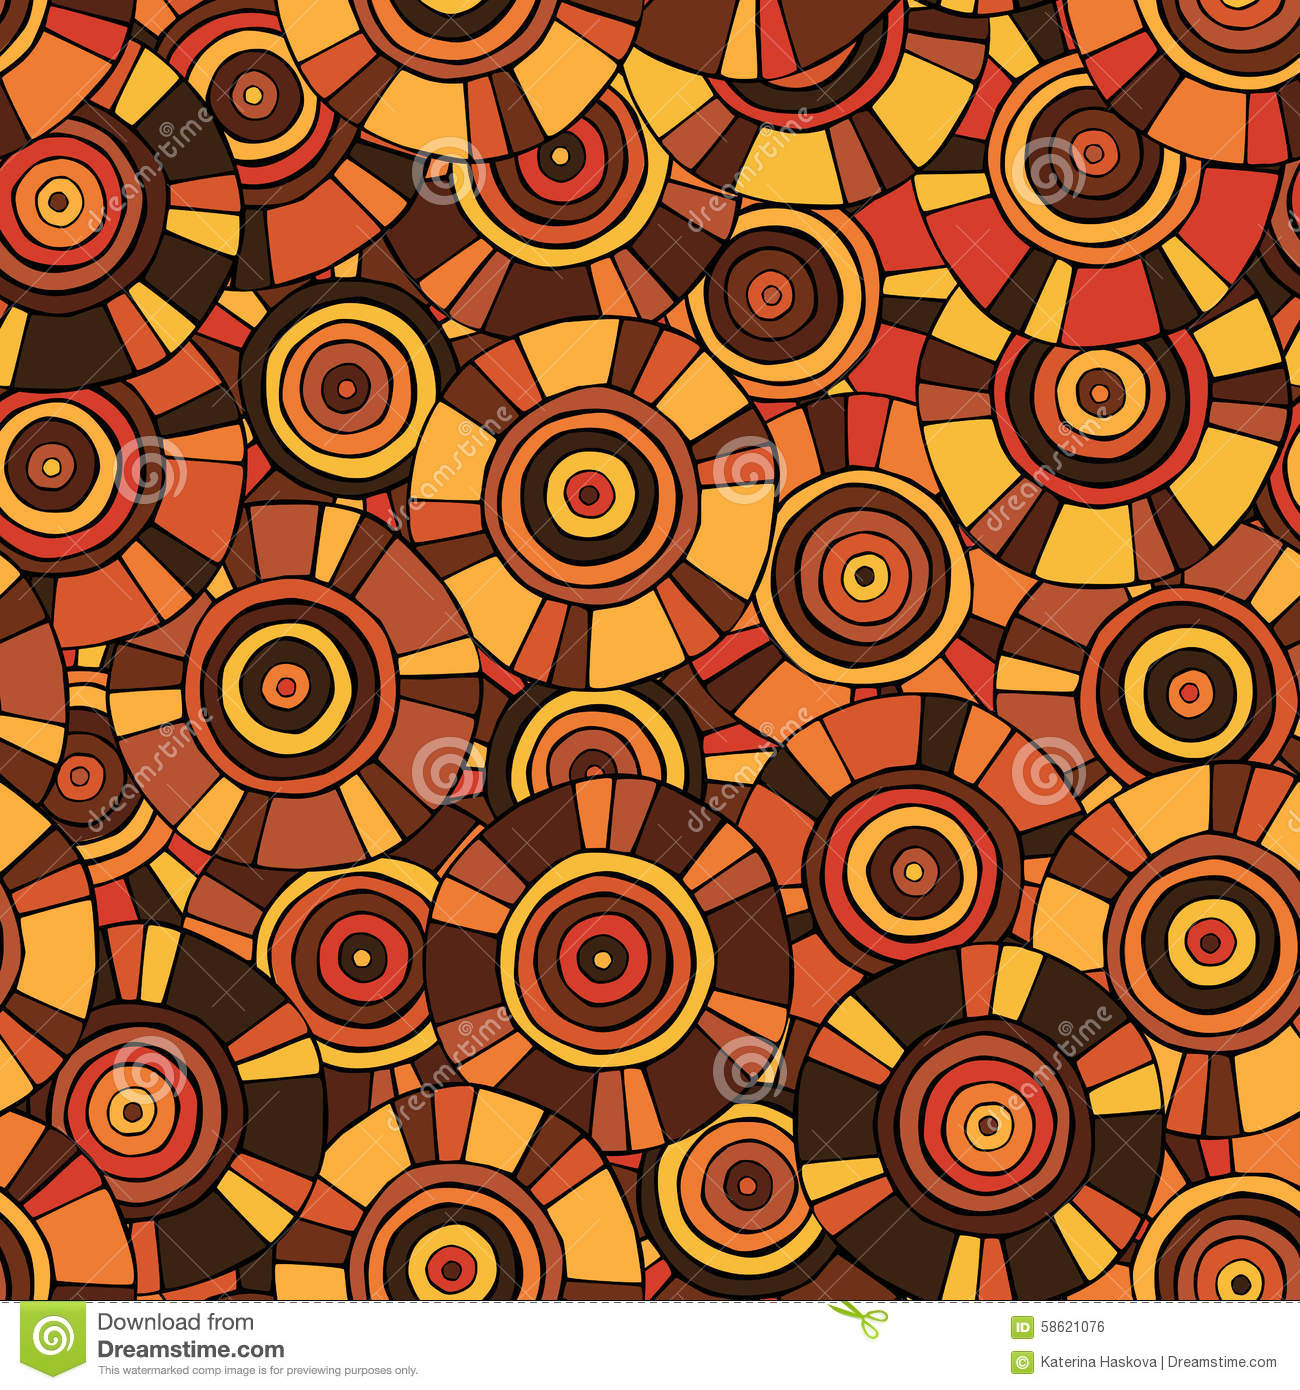 Circular, Tribal Pattern With Motifs Of African Tribes